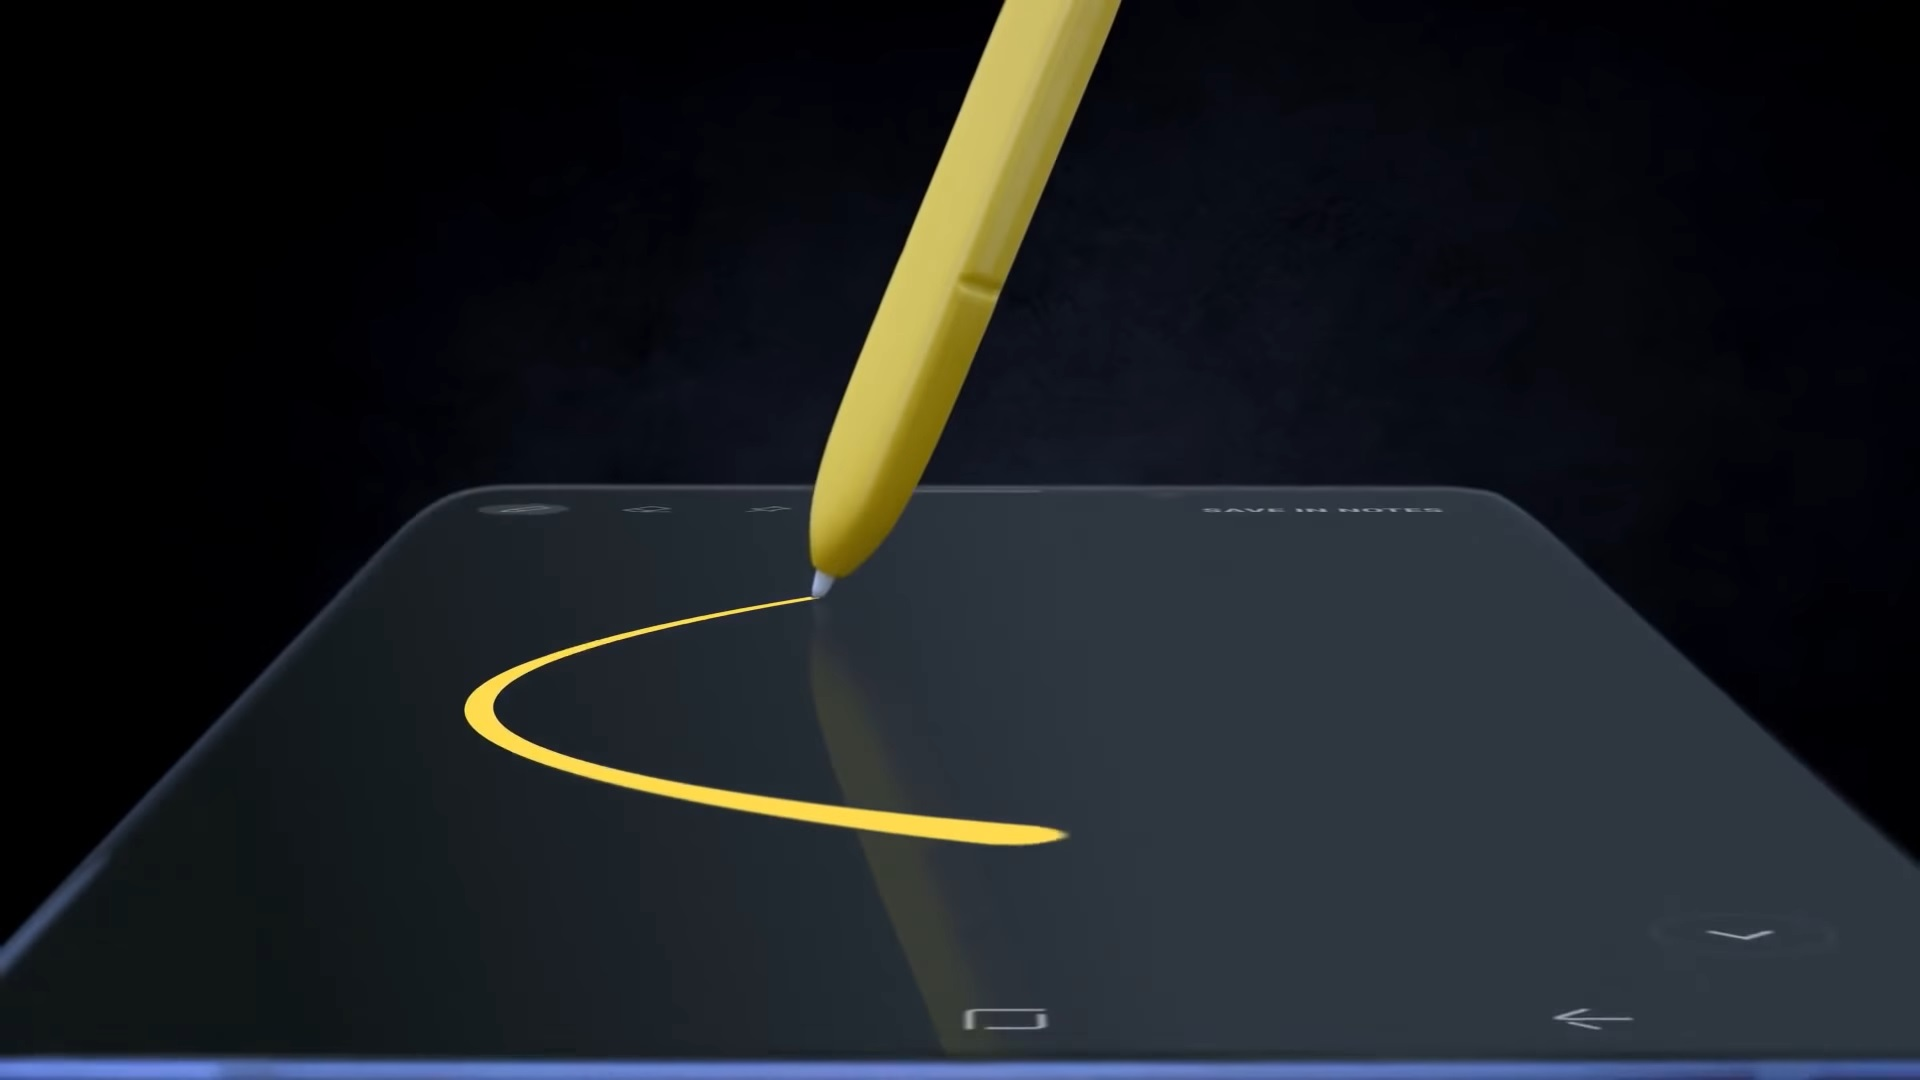 Samsung Galaxy Note 9 video - Slika 1